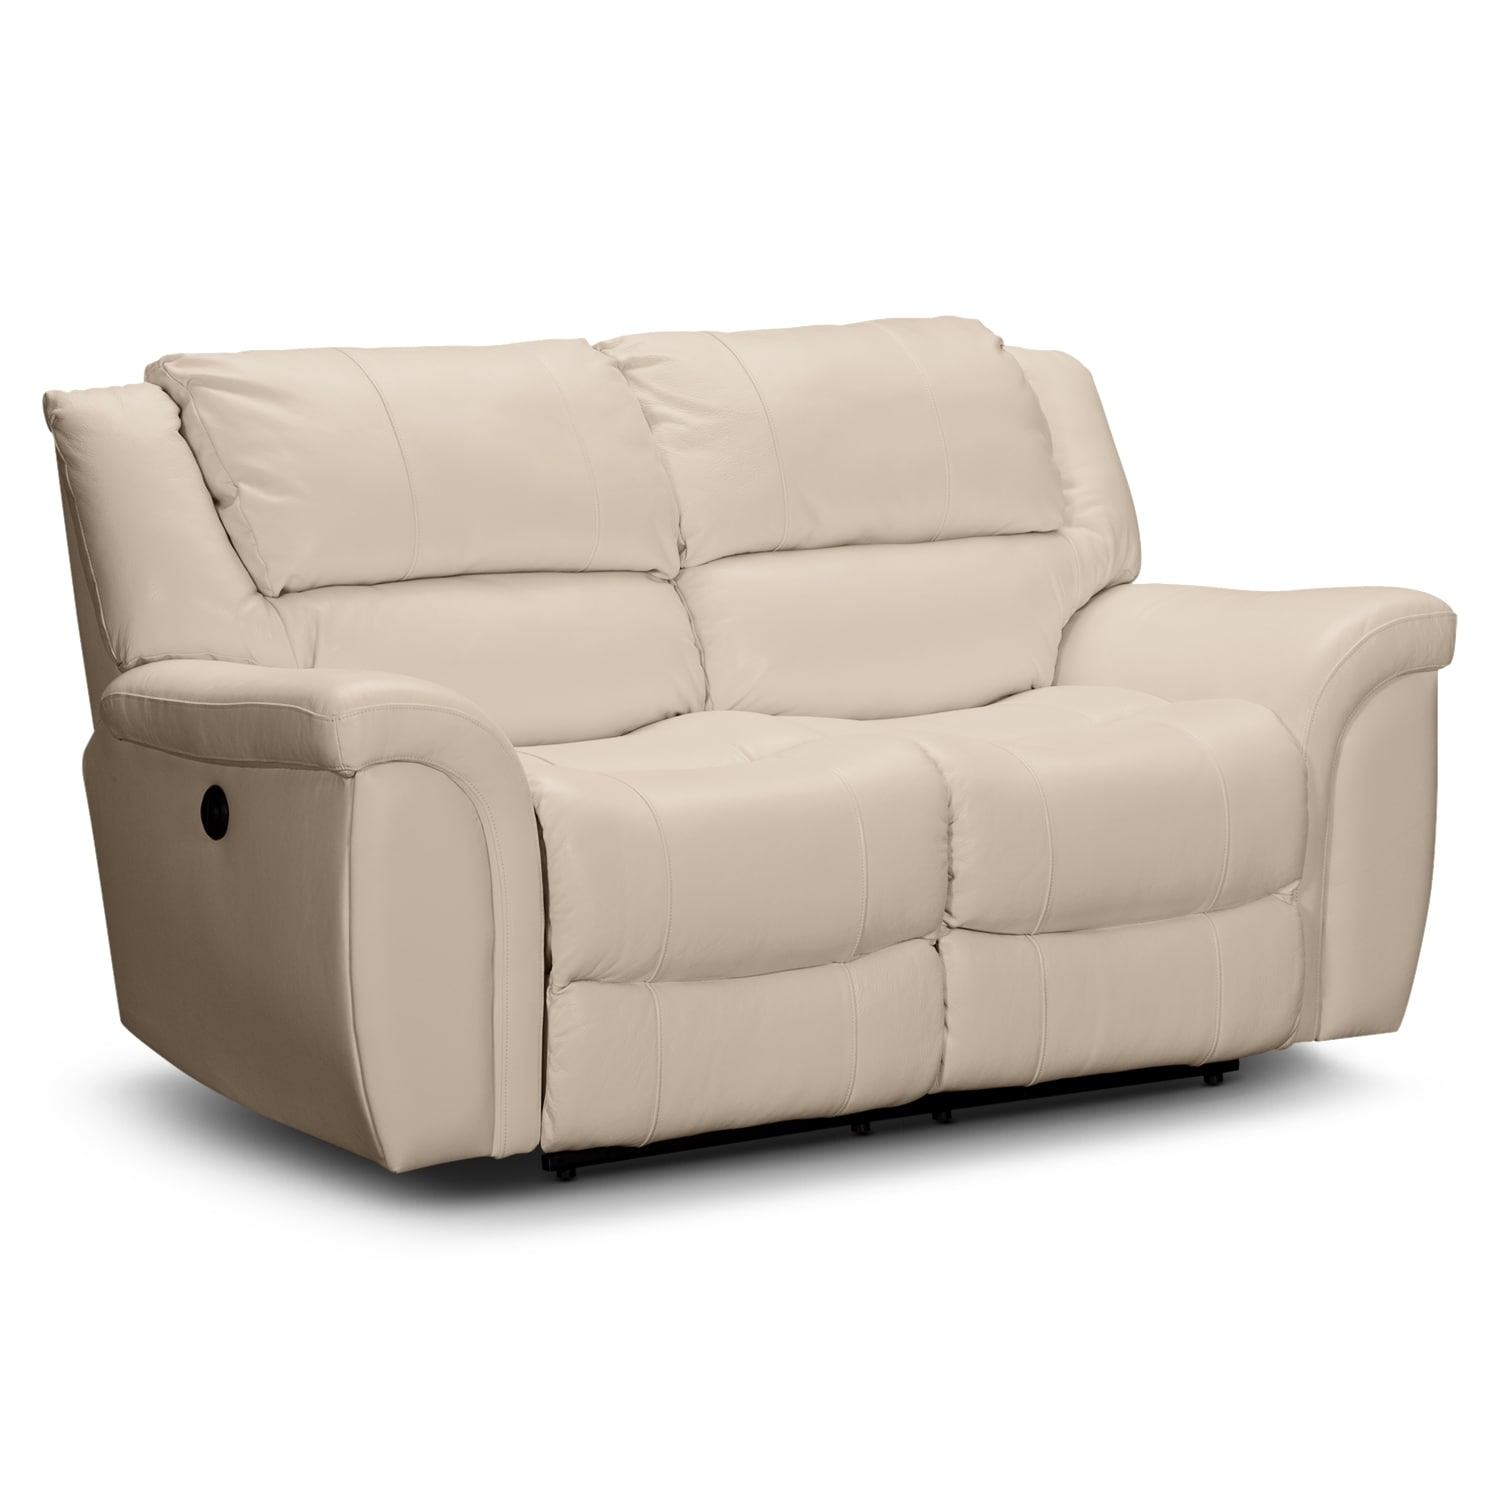 Furnishings for every room online and store furniture sales value city furniture Leather reclining sofa loveseat